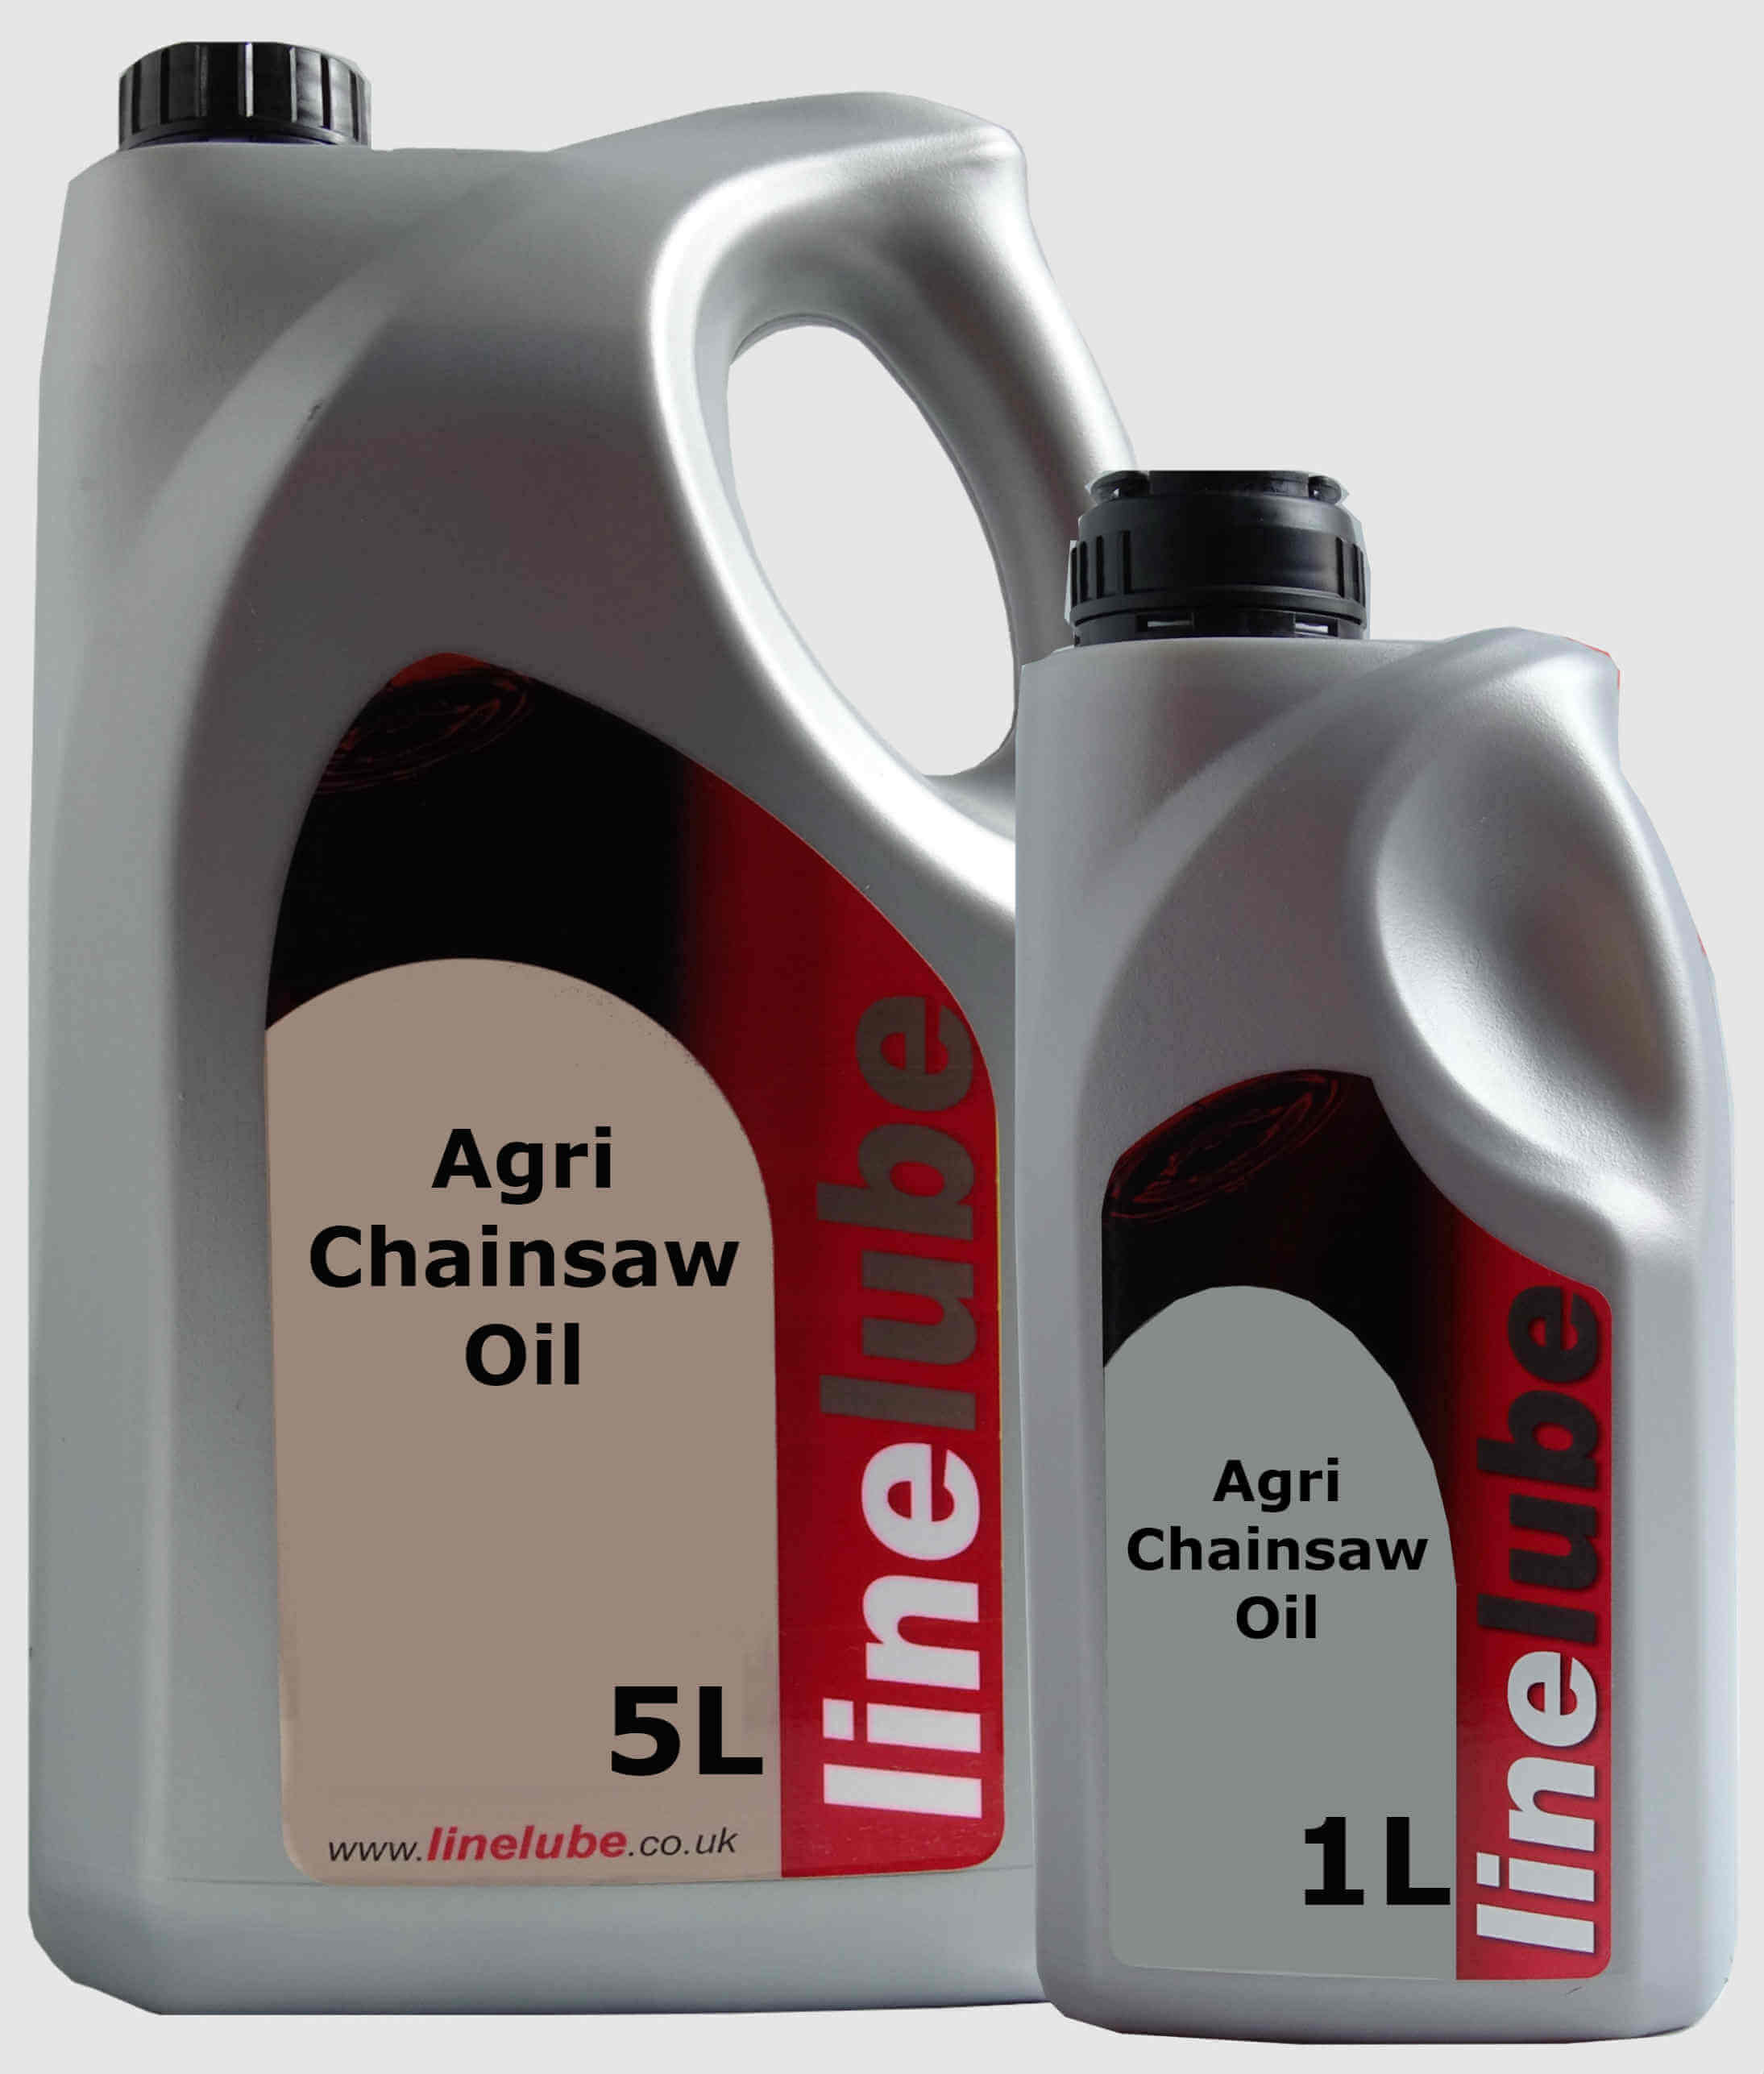 Linelube Agri Chainsaw Oil